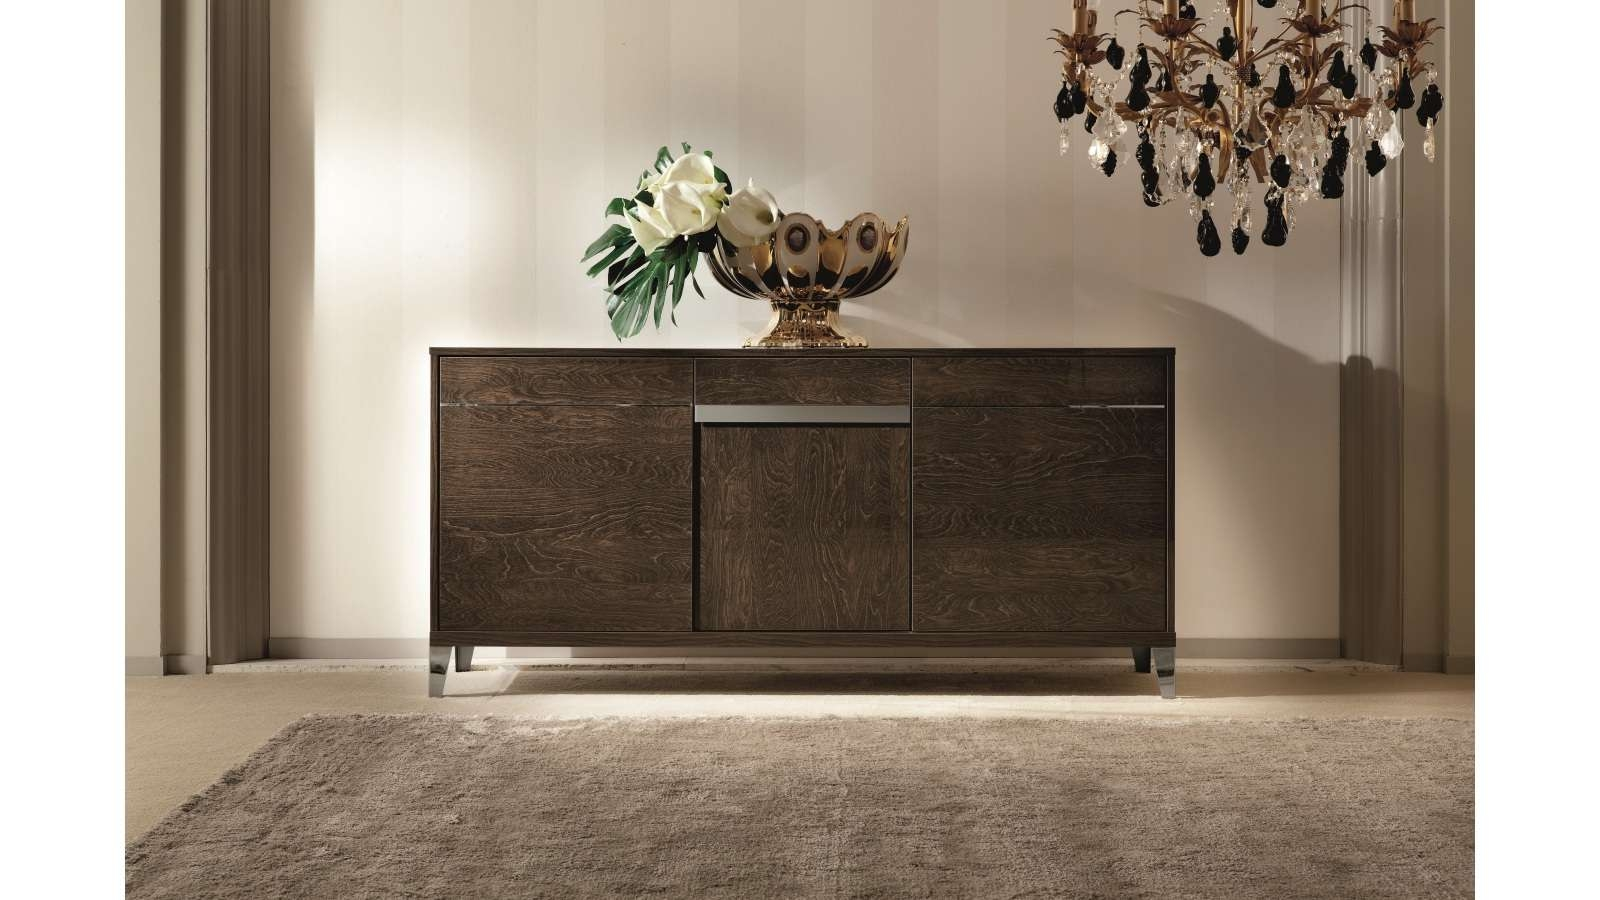 Sideboards That Will Work Great For Any Home! | Home & Decor Singapore Inside Singapore Sideboards And Buffets (View 2 of 20)